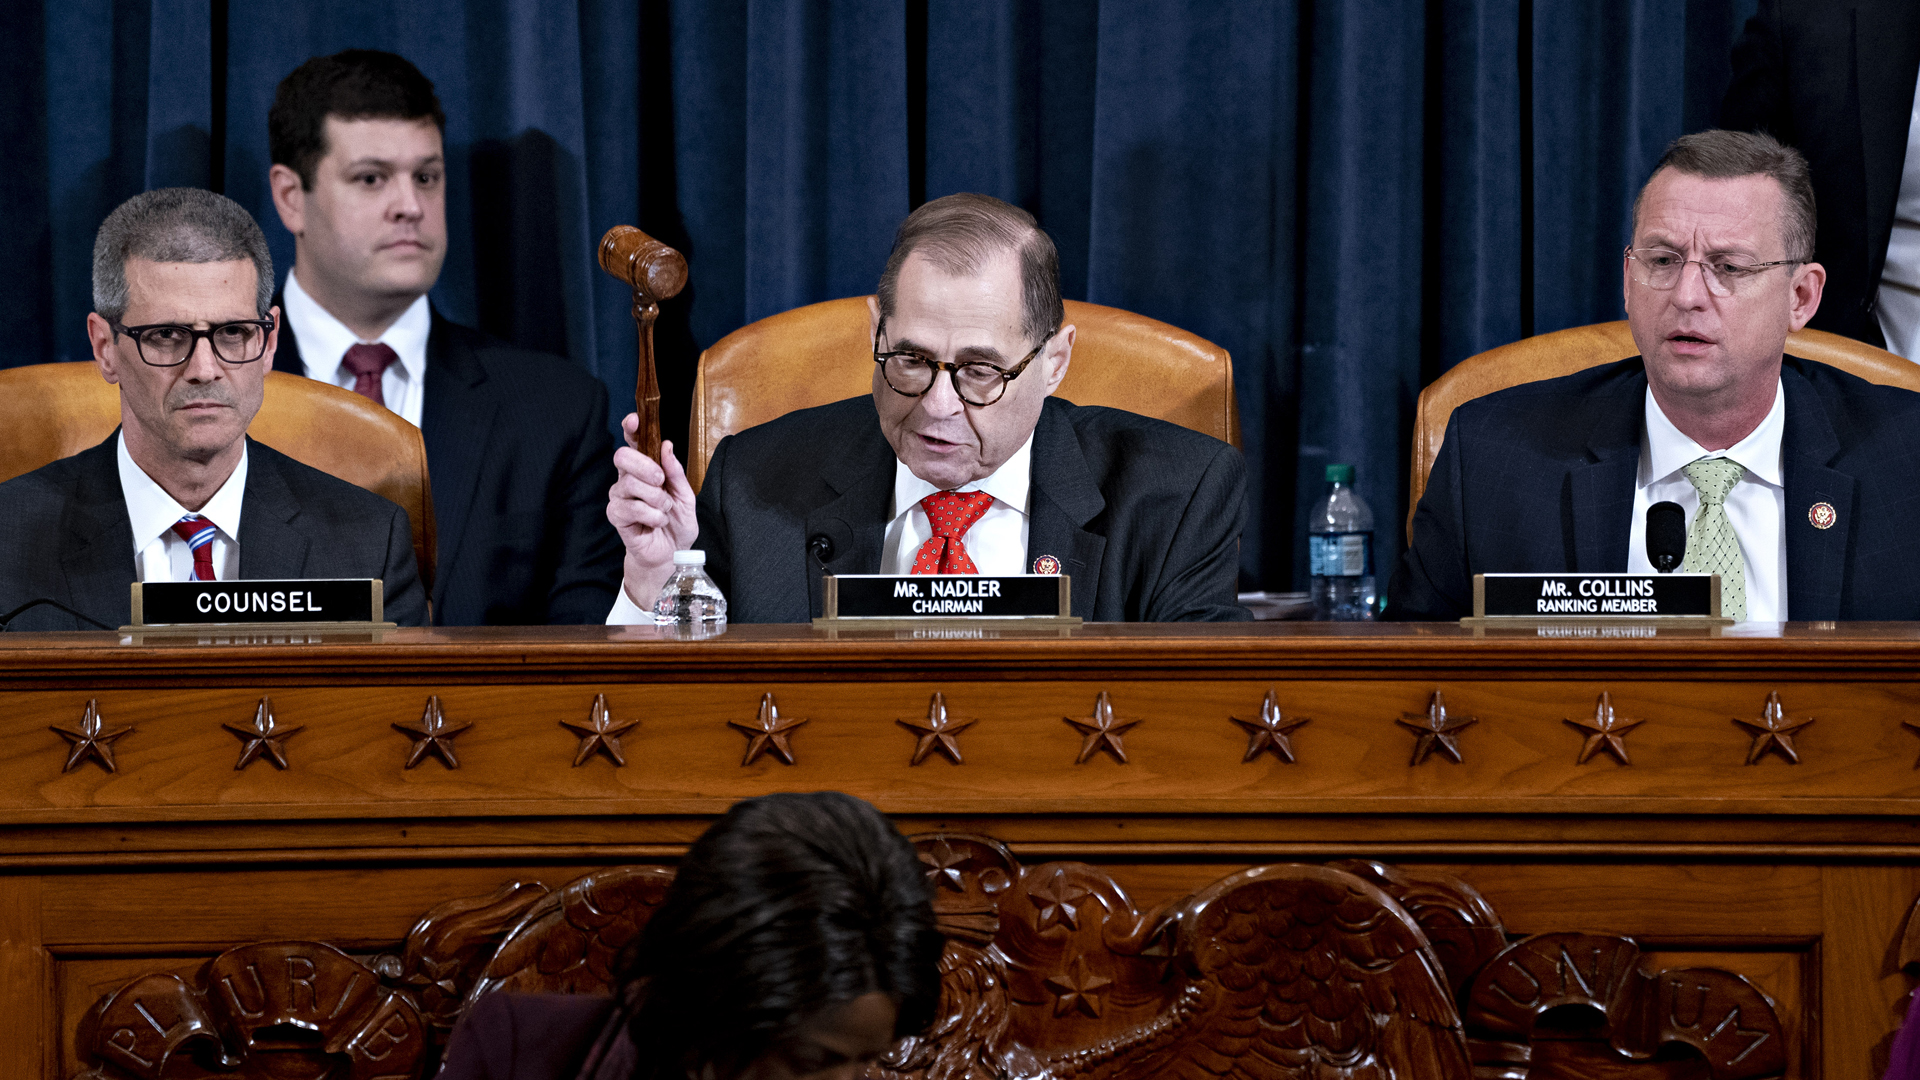 U.S. House Judiciary Committee Chairman Jerry Nadler (D-NY) gavels the committee hearing to an adjournment at the Longworth House Office Building on Dec. 12, 2019, in Washington, DC. (Credit: Andrew Harrer - Pool/Getty Images)